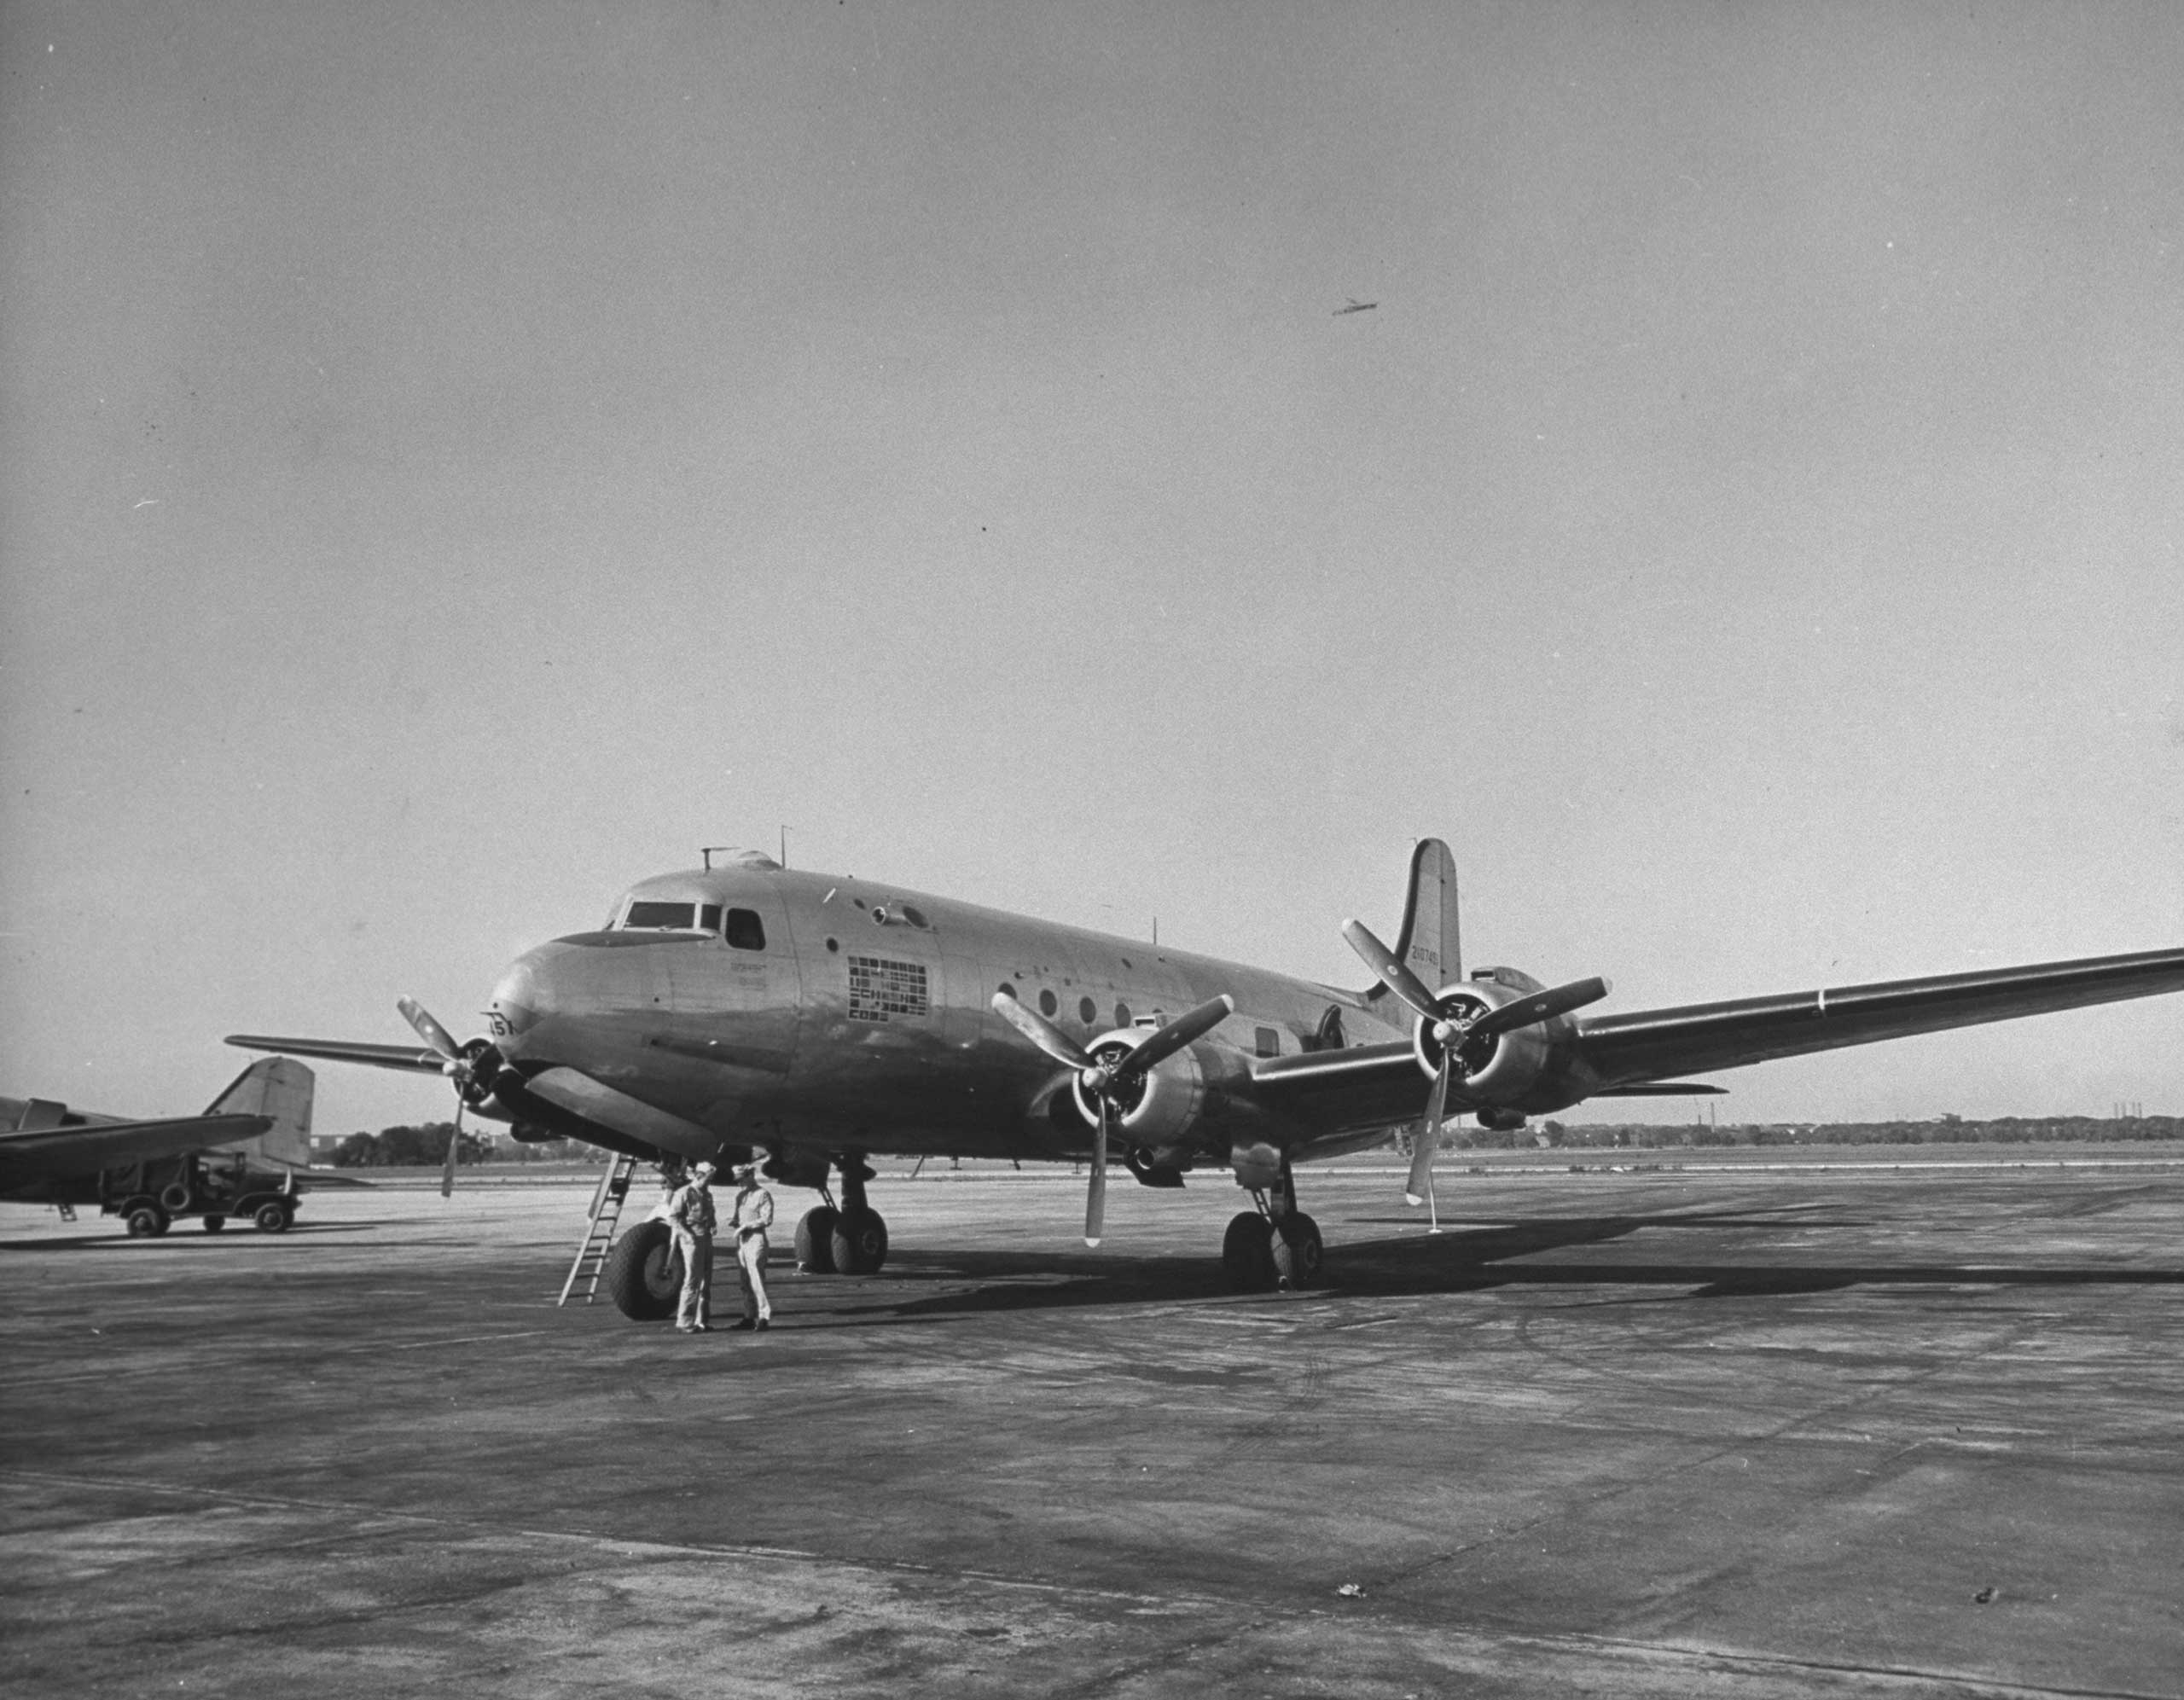 After the original Air Force One, a C-87A Liberator Express nicknamed <i>Guess Where II</i>, was deemed unsafe for presidential use, this Douglas C-54 Skymaster, nicknamed <i>Sacred Cow</i> was introduced for President Franklin D. Roosevelt in 1945. It was equipped with a radio telephone, sleeping area, and elevator for President Roosevelt's wheelchair.